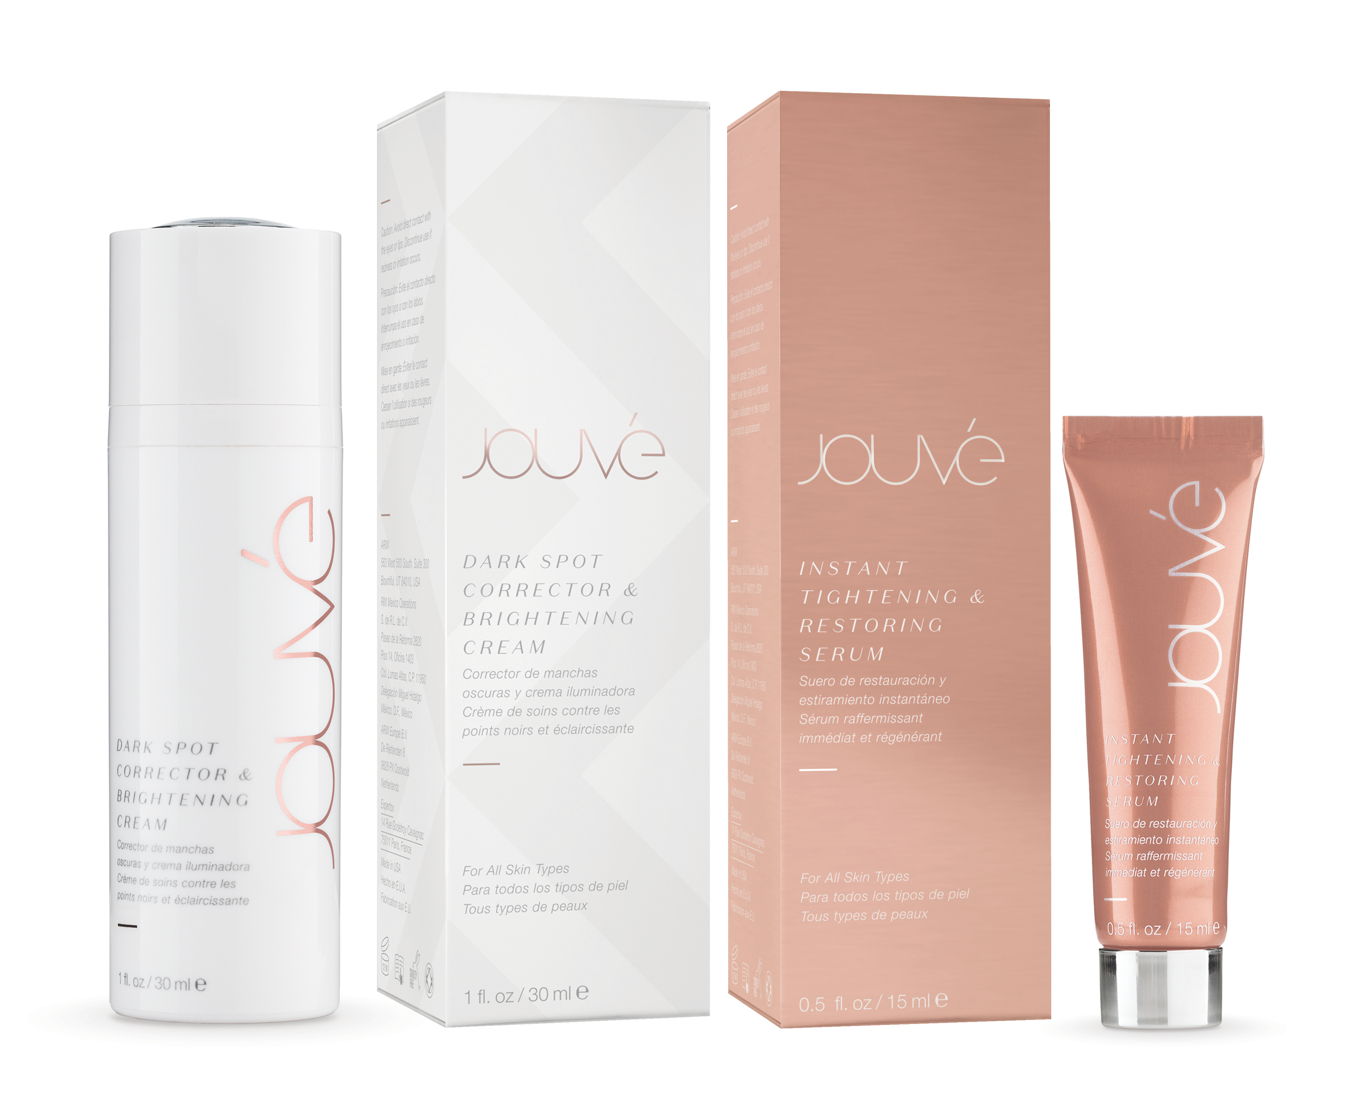 Jouve-Products.png